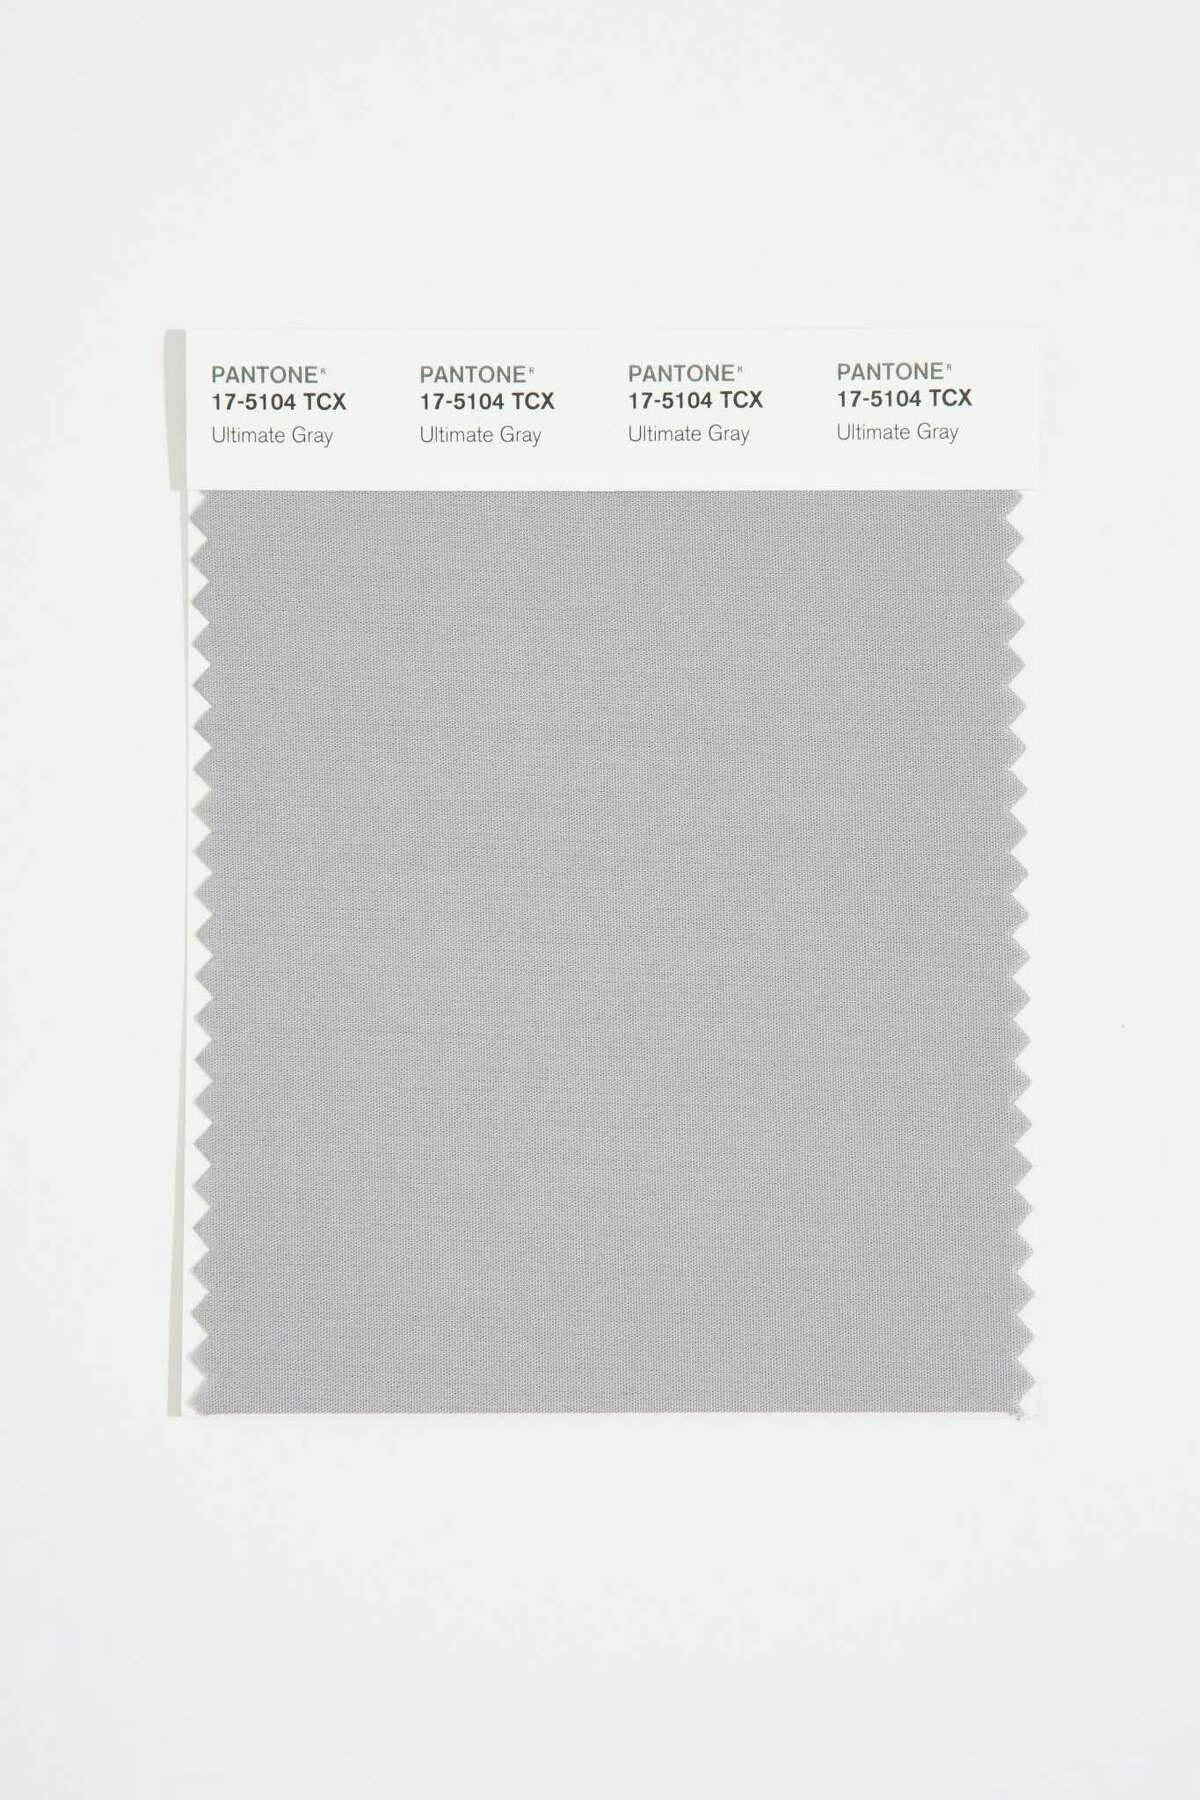 Color experts at Pantone have named Ultimately Gray and Illuminating as two Colors of the Year for 2021.